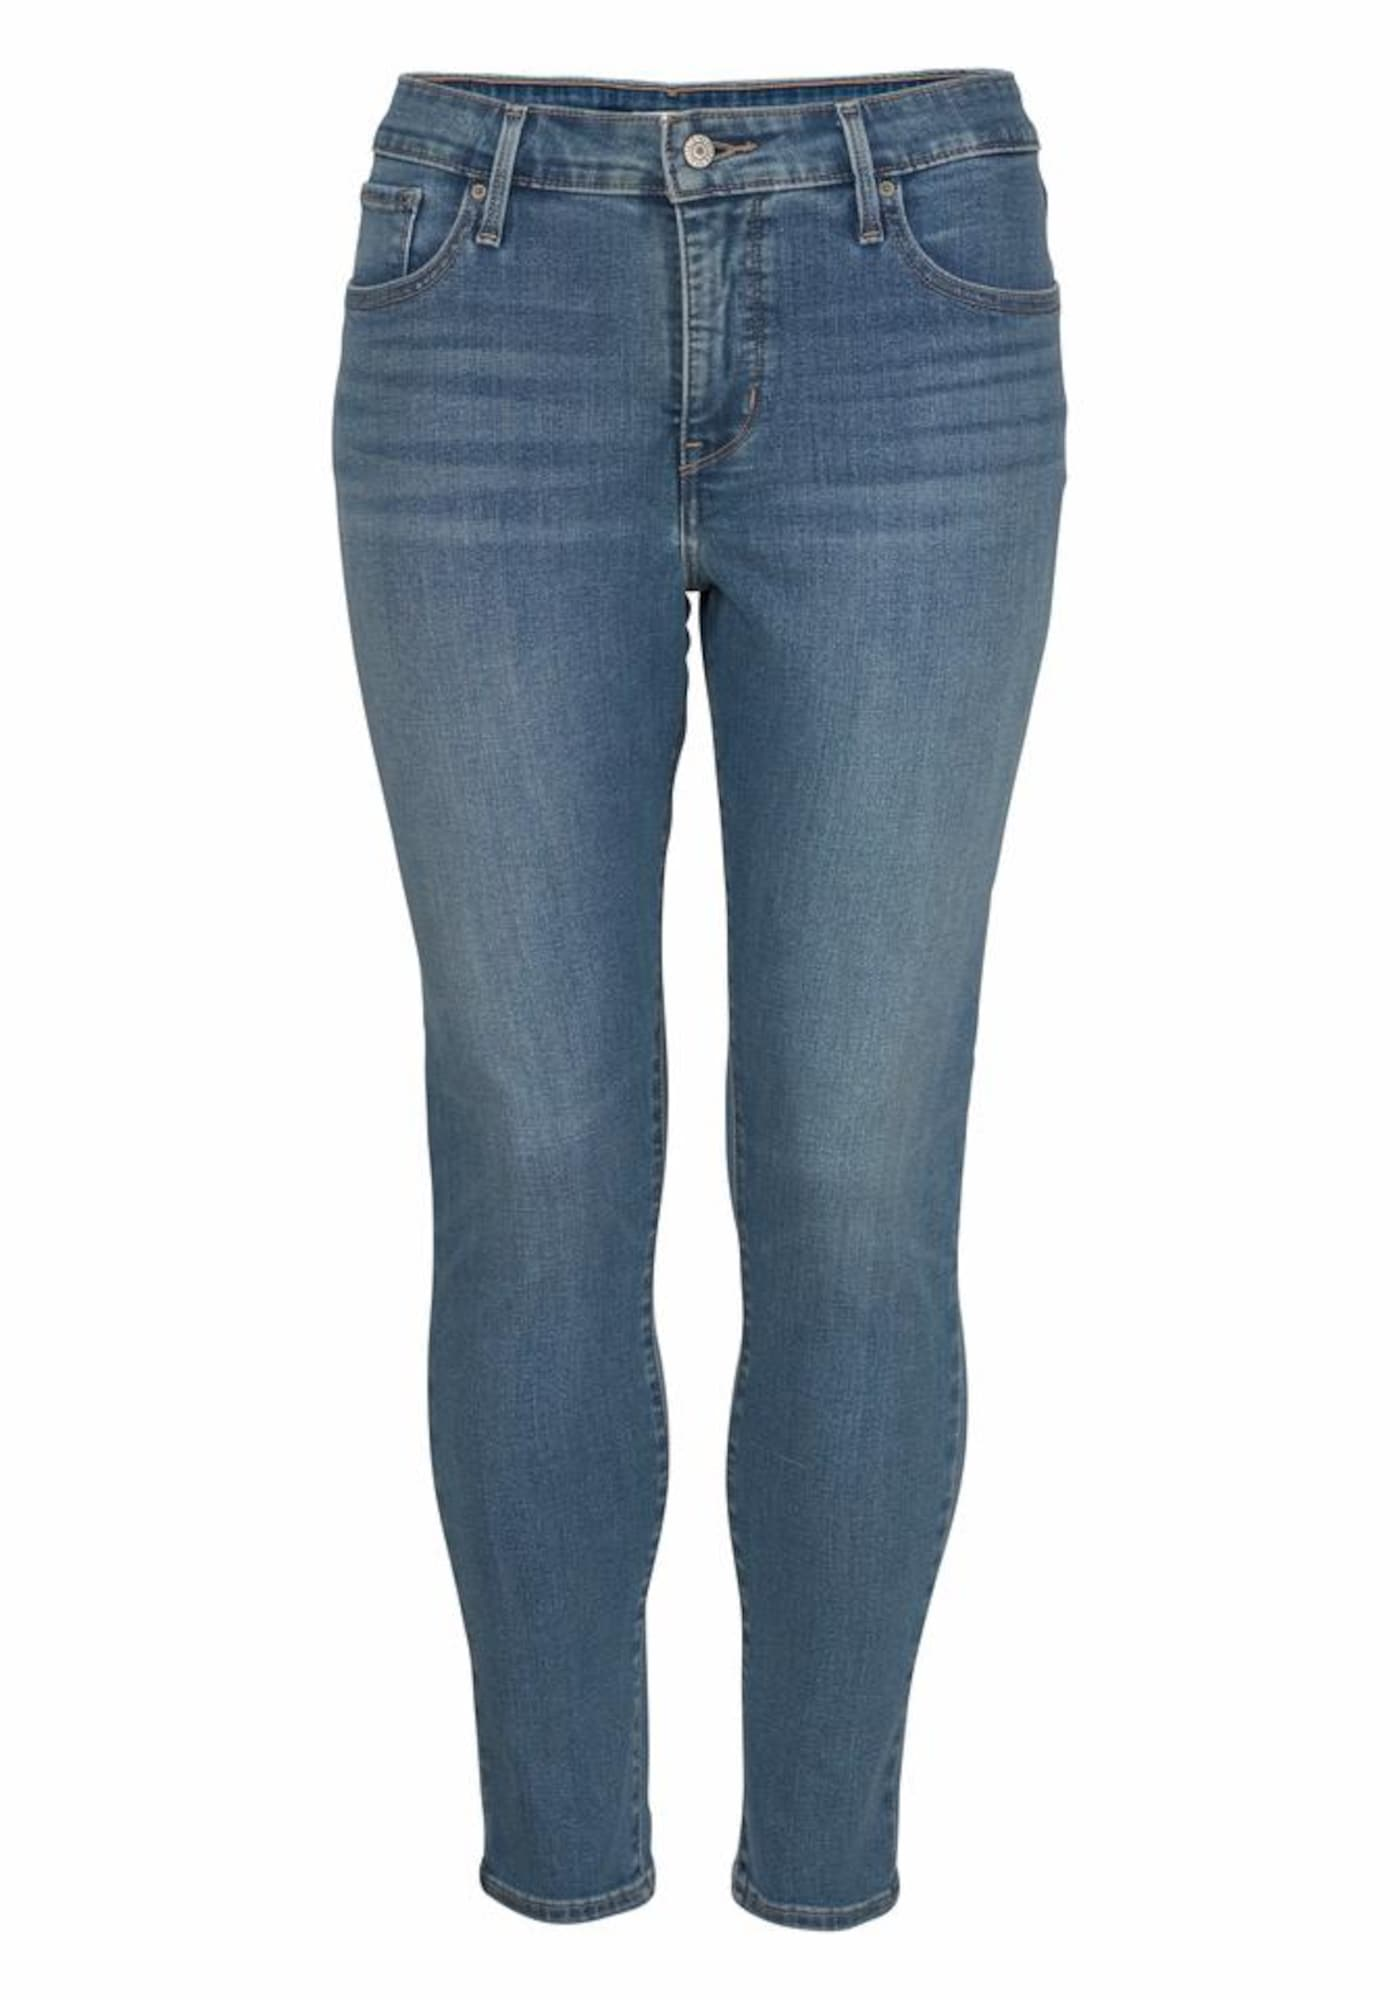 LEVI'S Dames Jeans Shaping Super Skinny 310 blauw